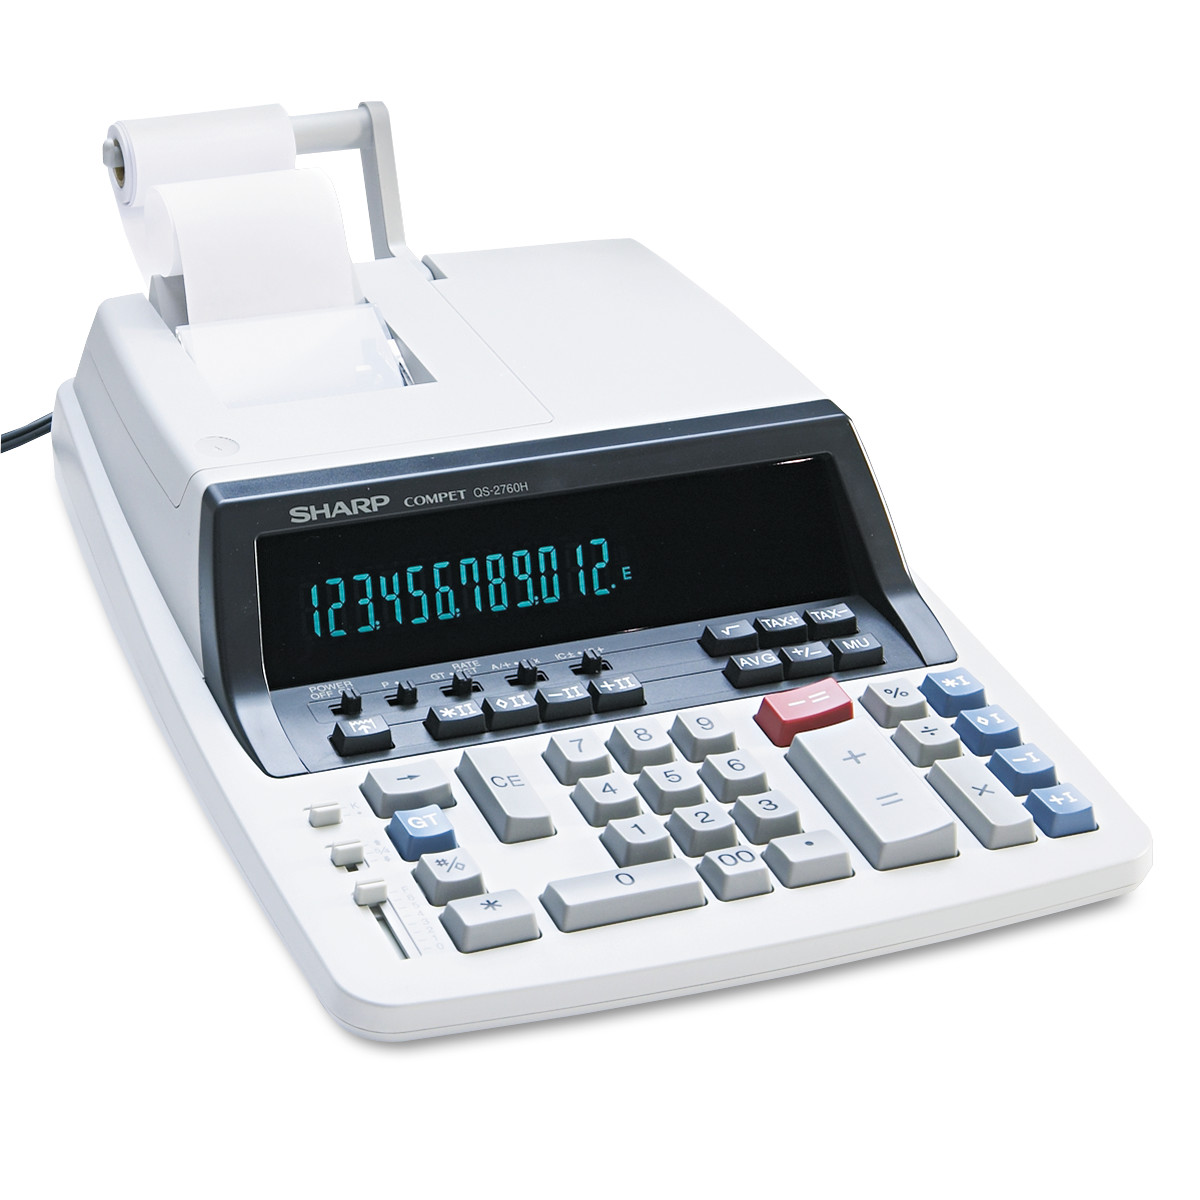 Sharp QS-2760H Two-Color Ribbon Printing Calculator, Black Red Print, 4.8 Lines Sec by Sharp Electronics